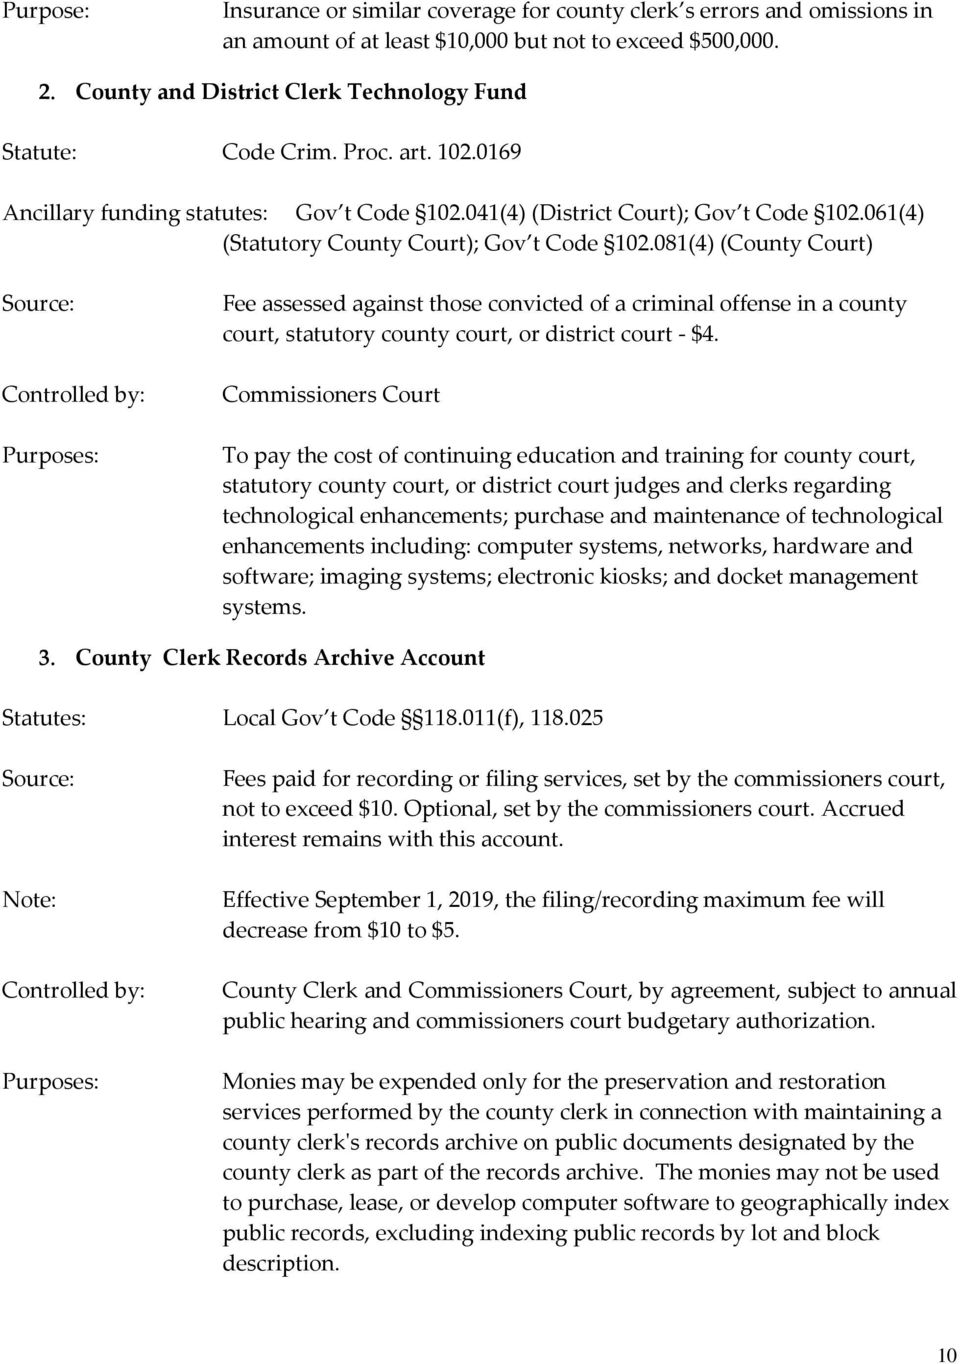 061(4) (Statutory County Court); Gov t Code 102.081(4) (County Court) Fee assessed against those convicted of a criminal offense in a county court, statutory county court, or district court - $4.